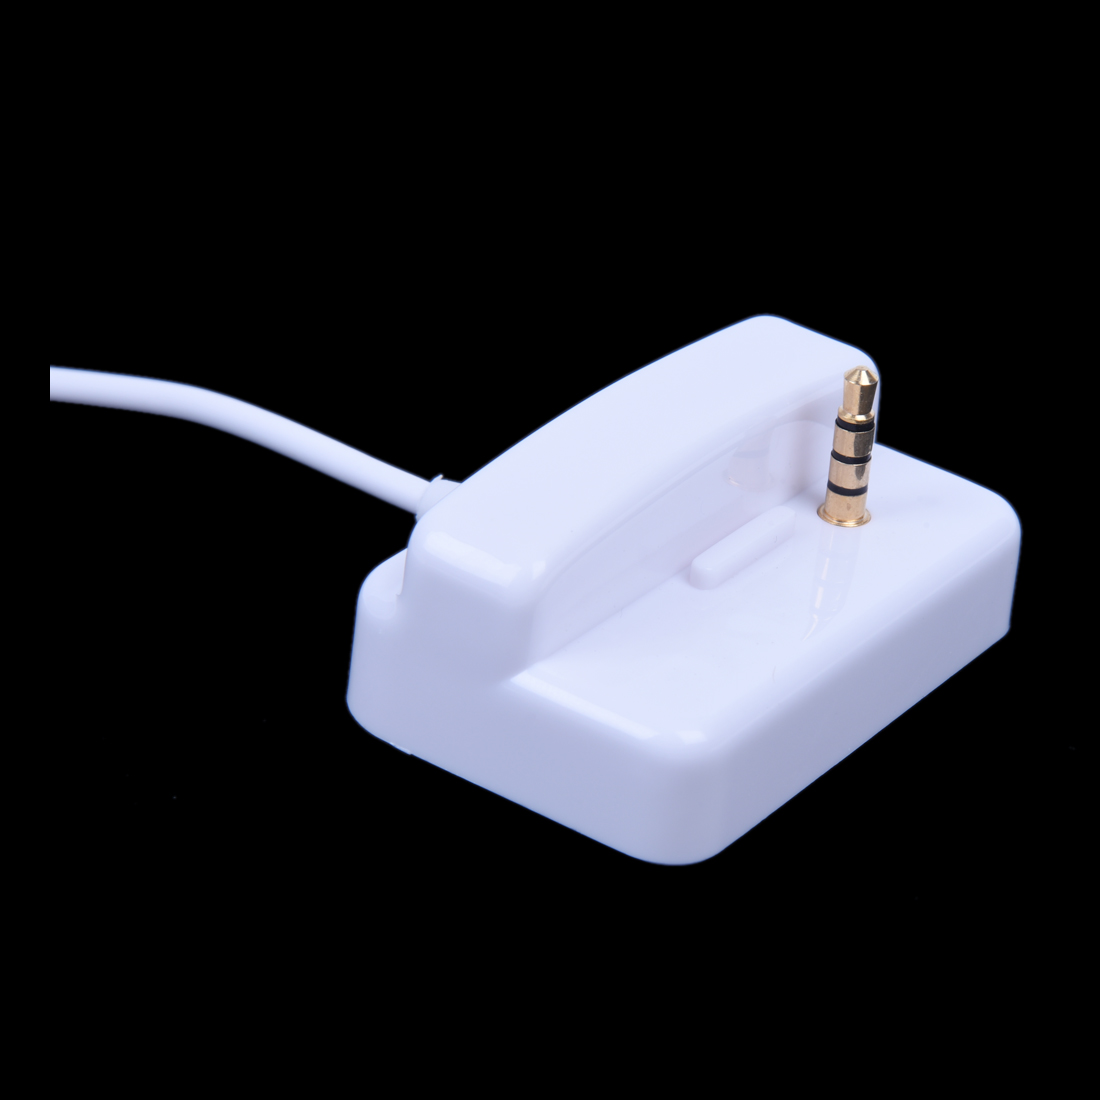 Usb For Ipod Shuffle 2nd Gen Charger Dock Cable White Ed